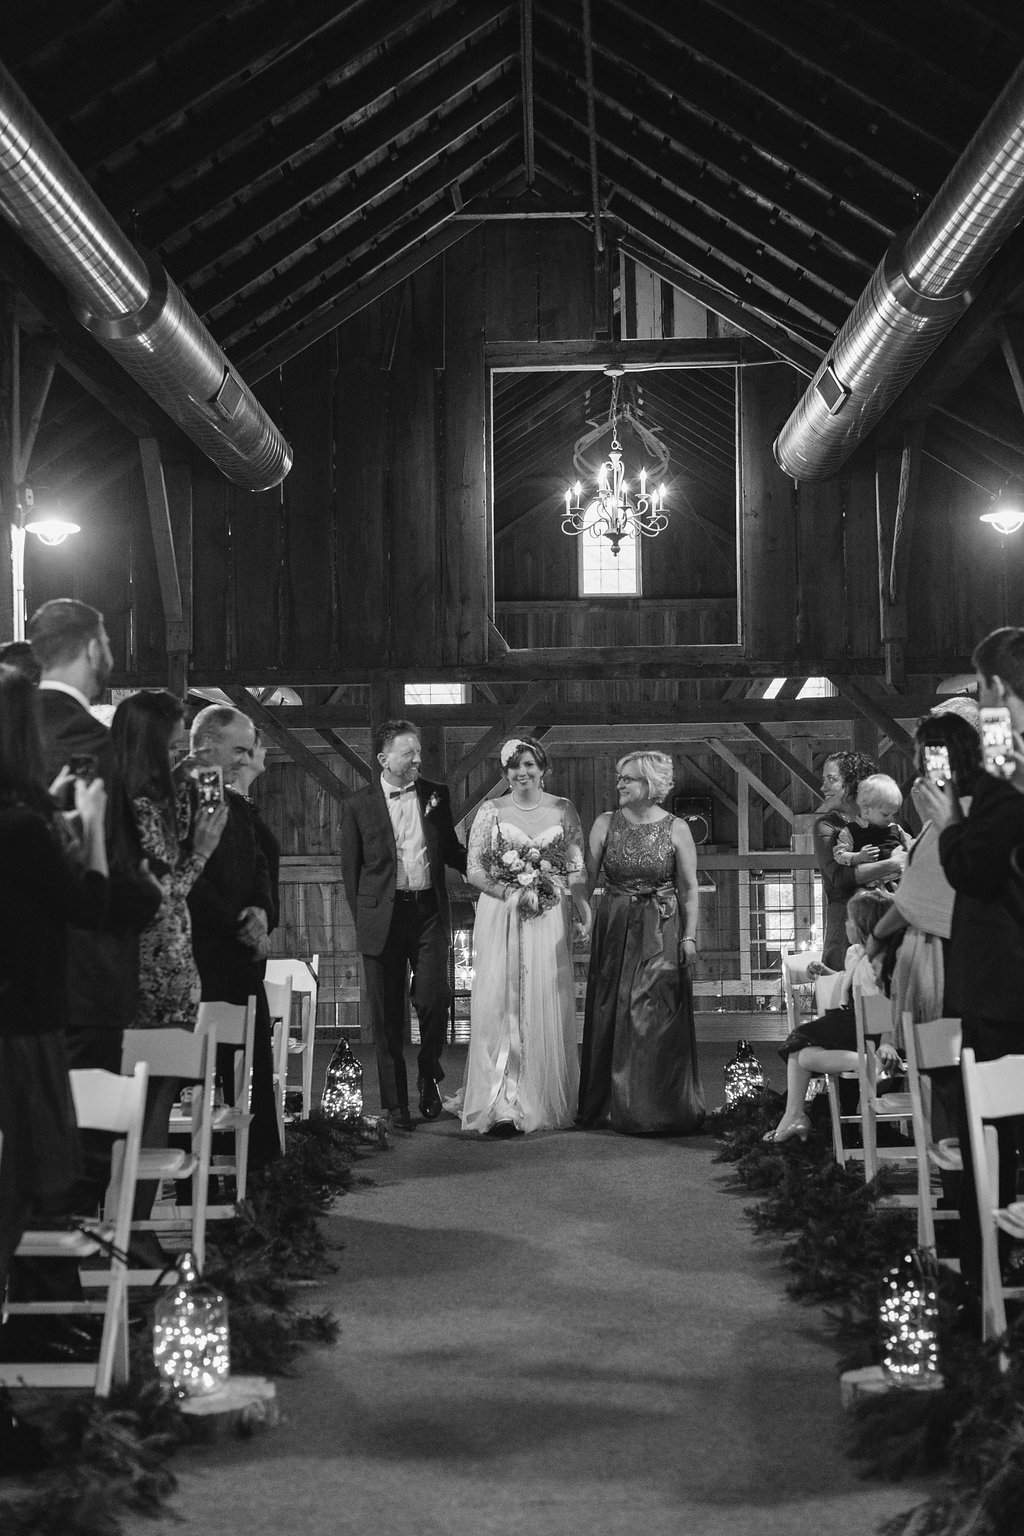 Heirloom Event Co. | The Barn at Harvest Moon Pond